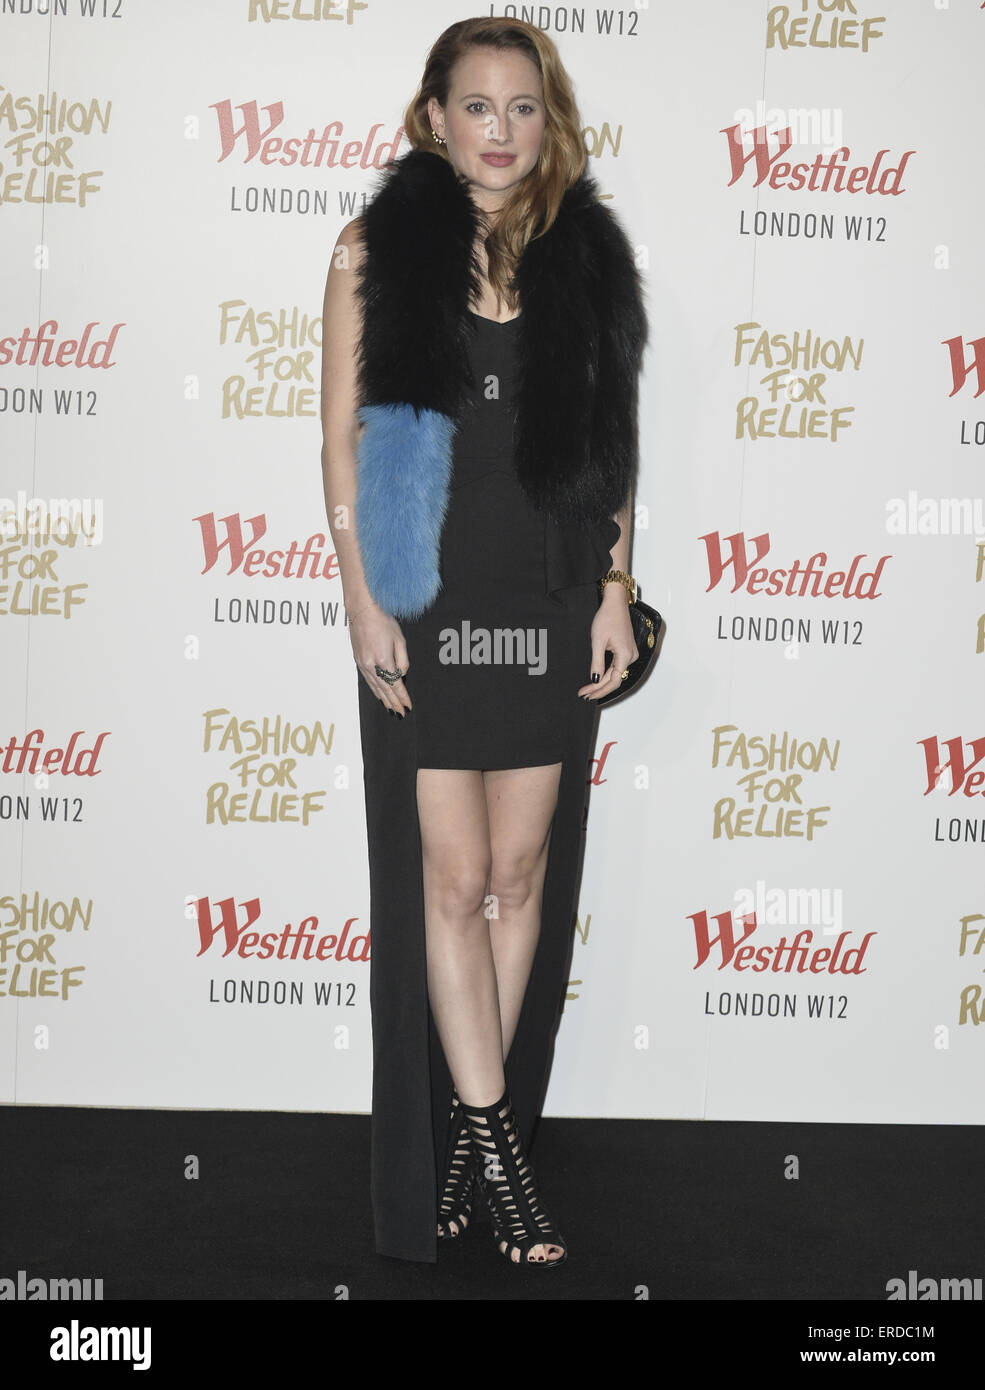 4cc27e01025 Fashion For Relief Pop-Up at Westfield - Arrivals Featuring  Rosie  Fortescue Where